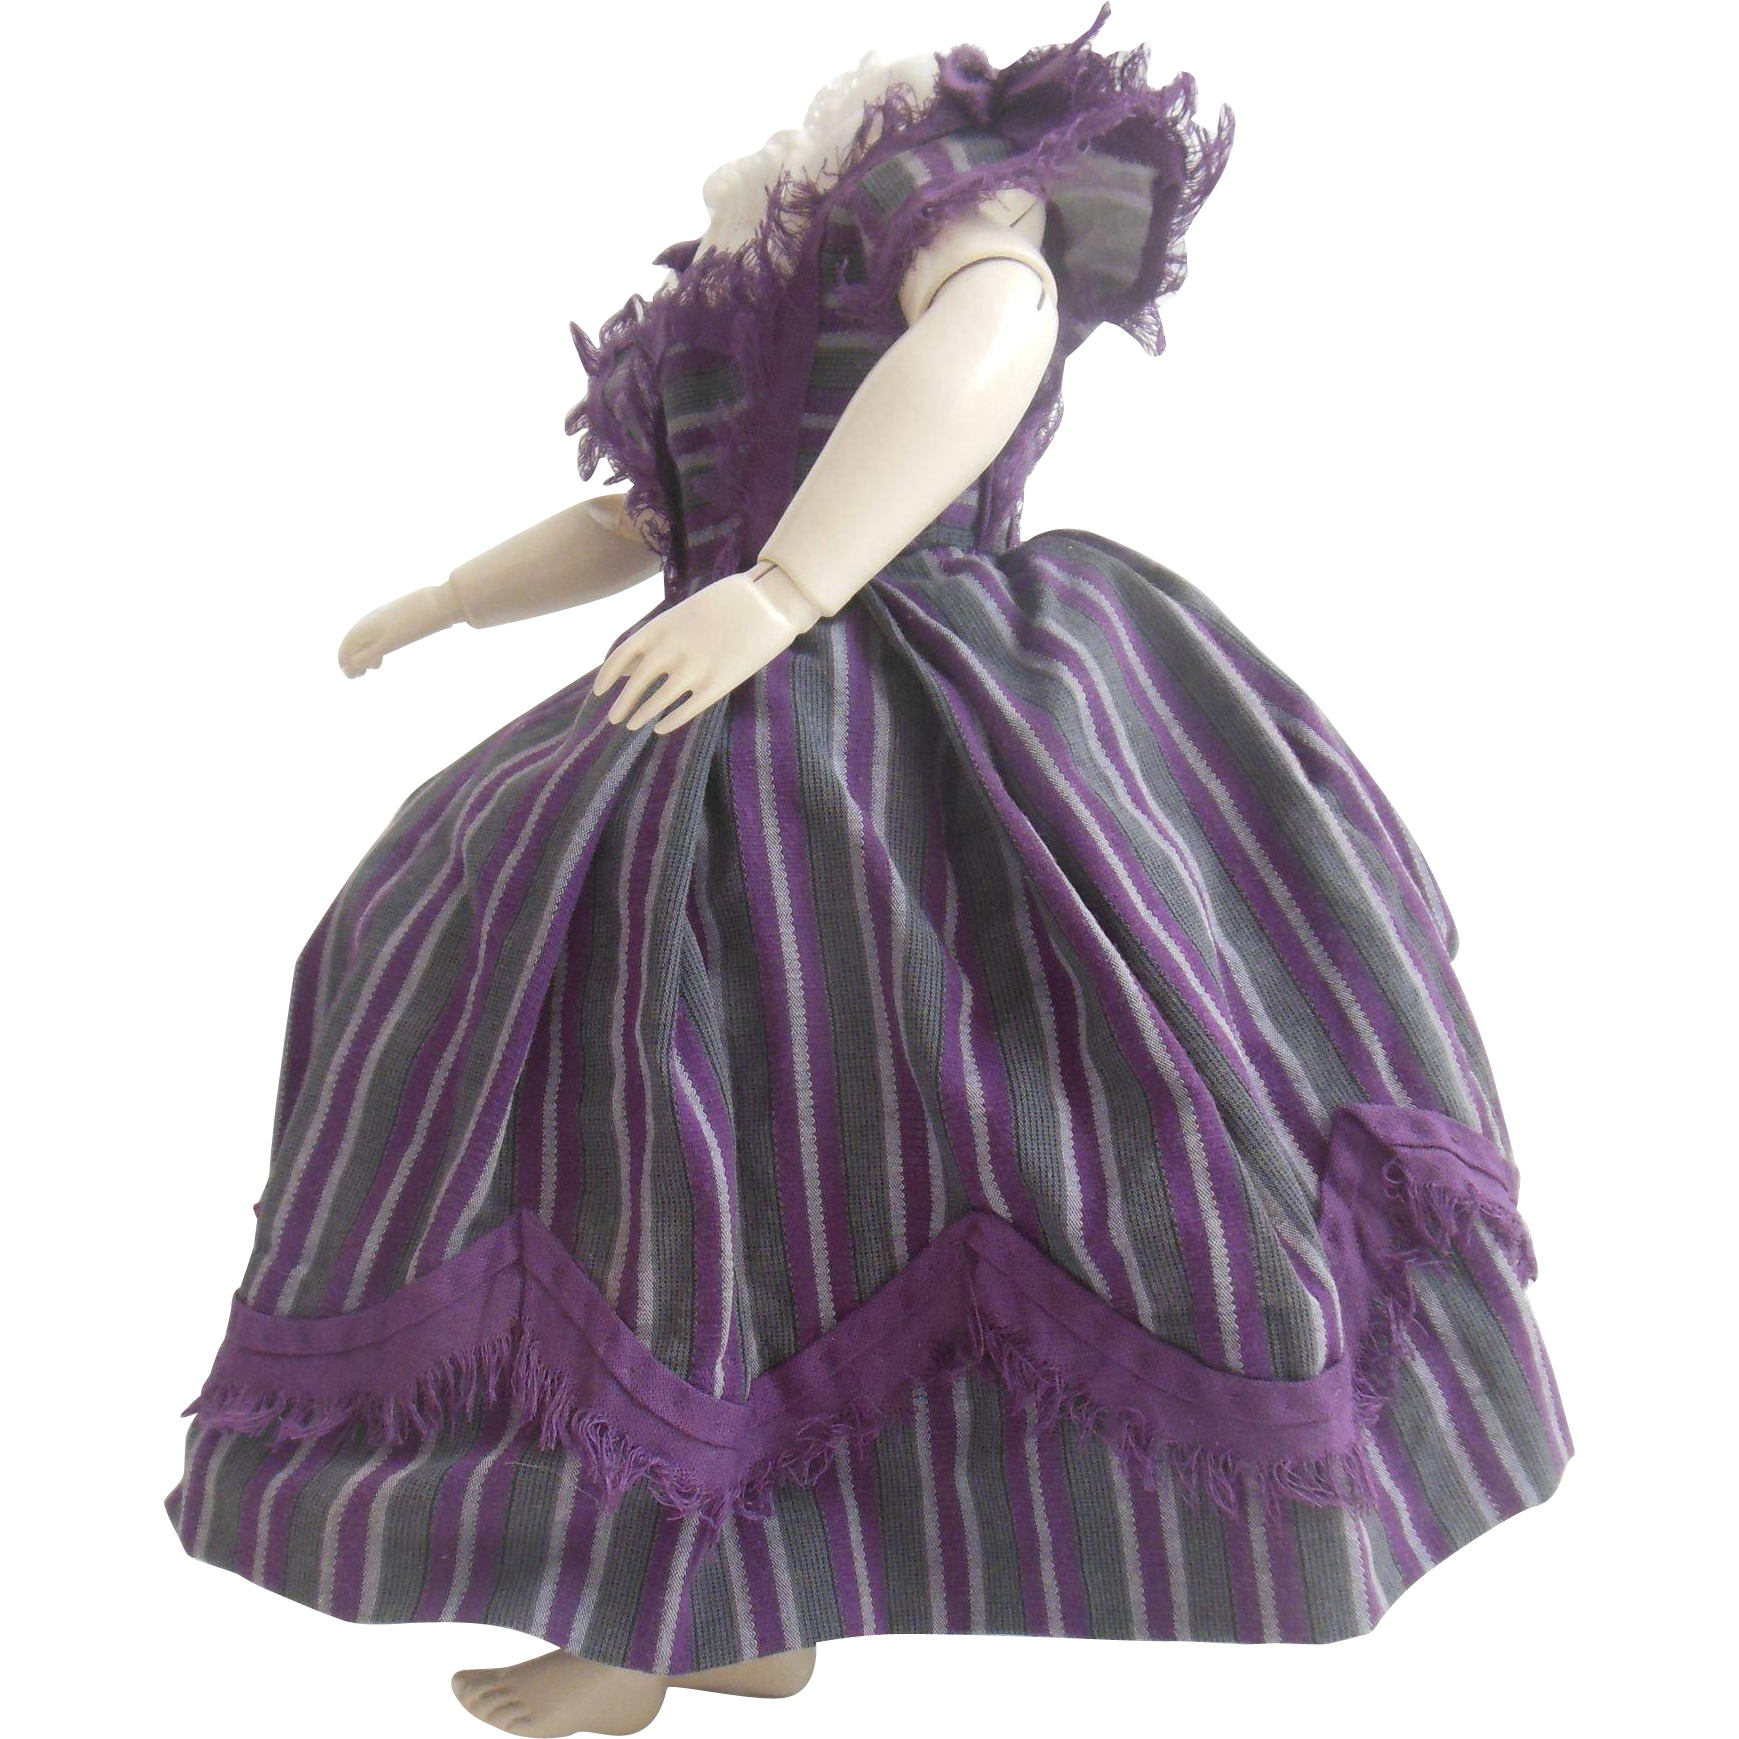 Enfantine style dress set for Huret or early french fashion doll